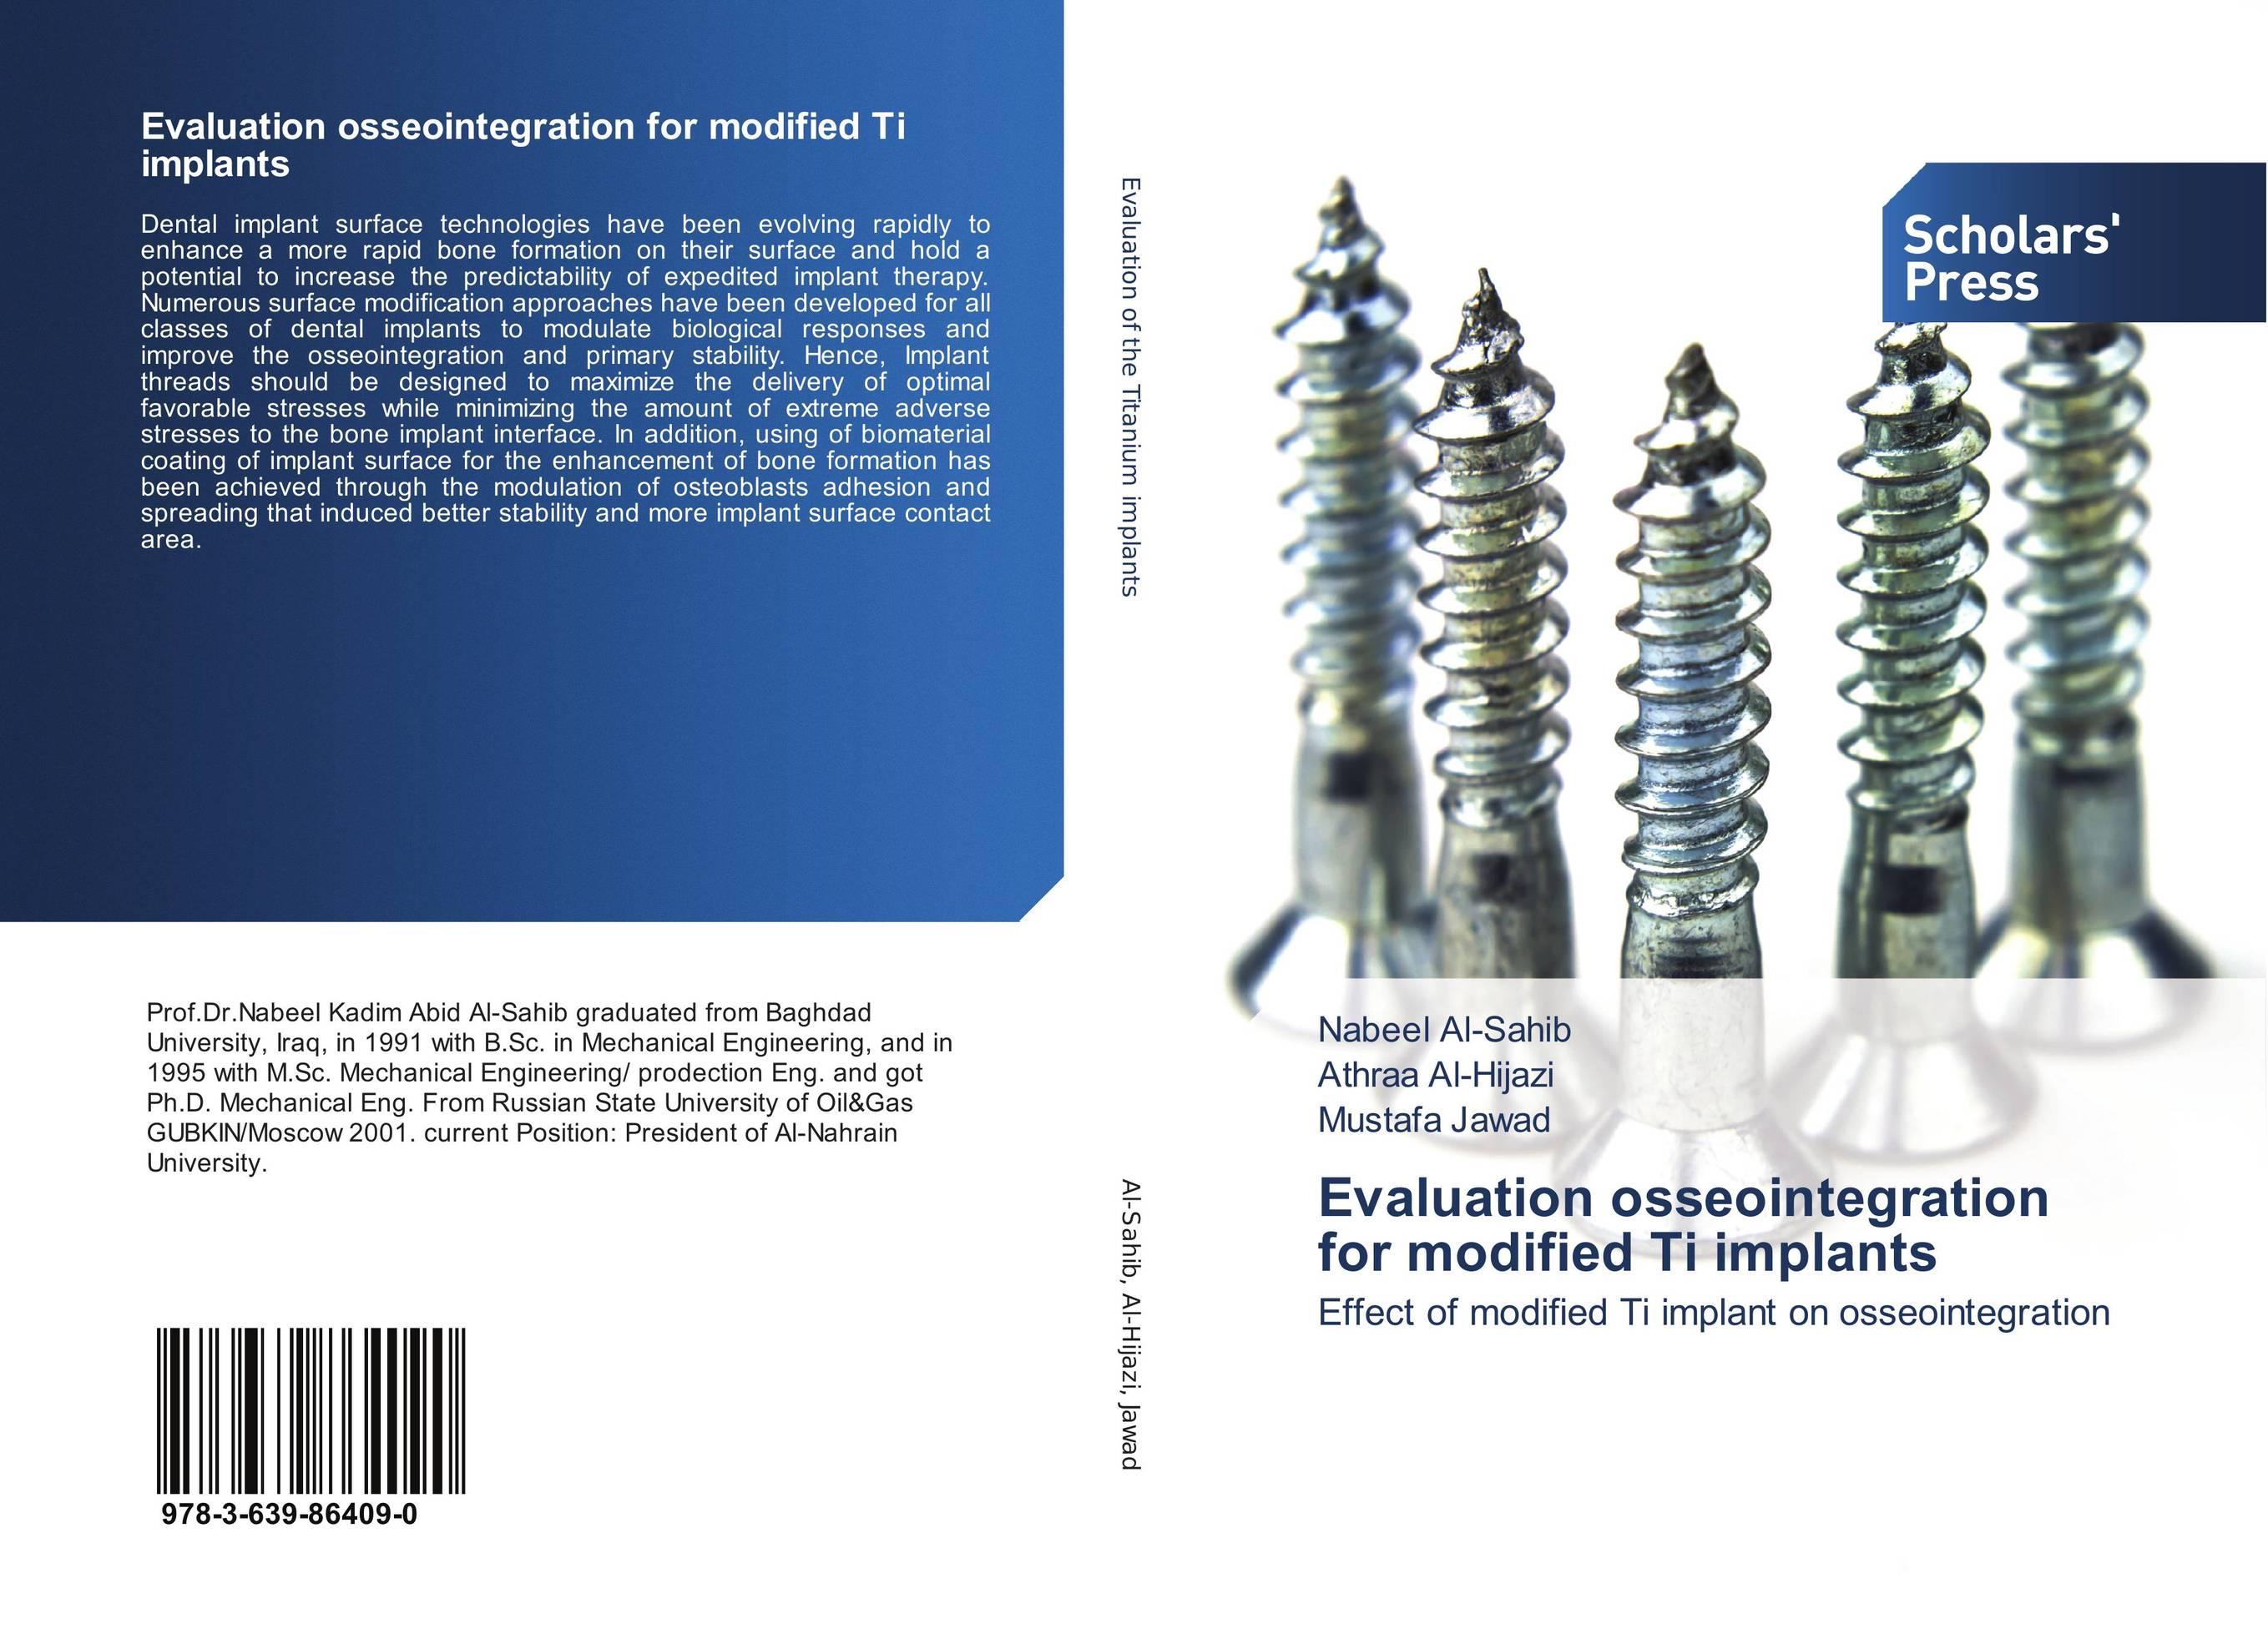 Evaluation osseointegration for modified Ti implants attachments retaining implant overdentures